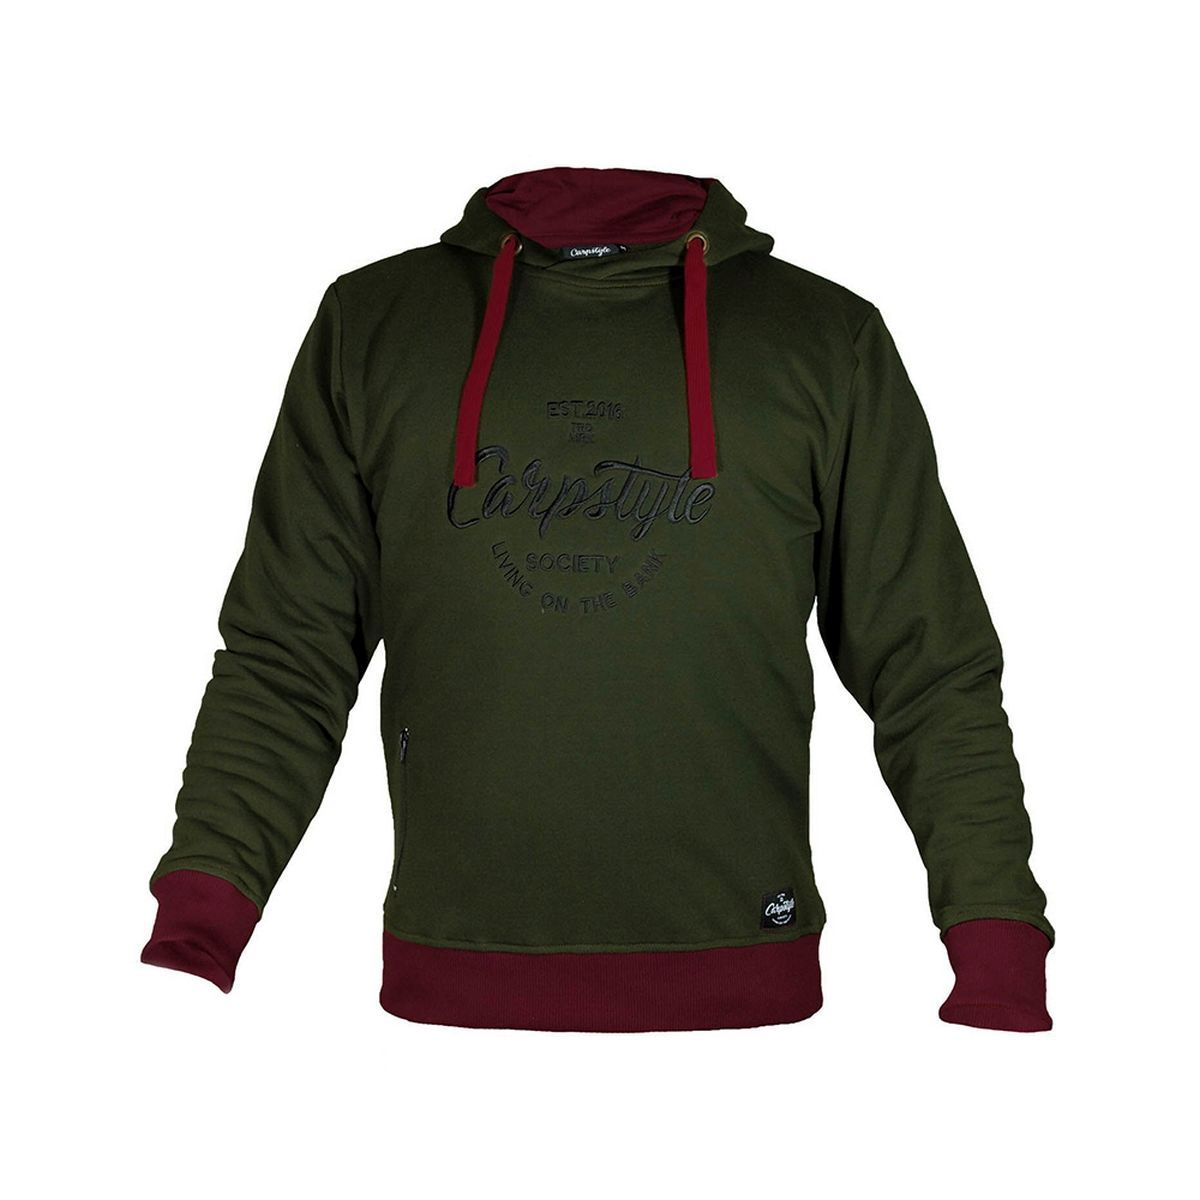 CARPSTYLE Green Forest Hoodie - M